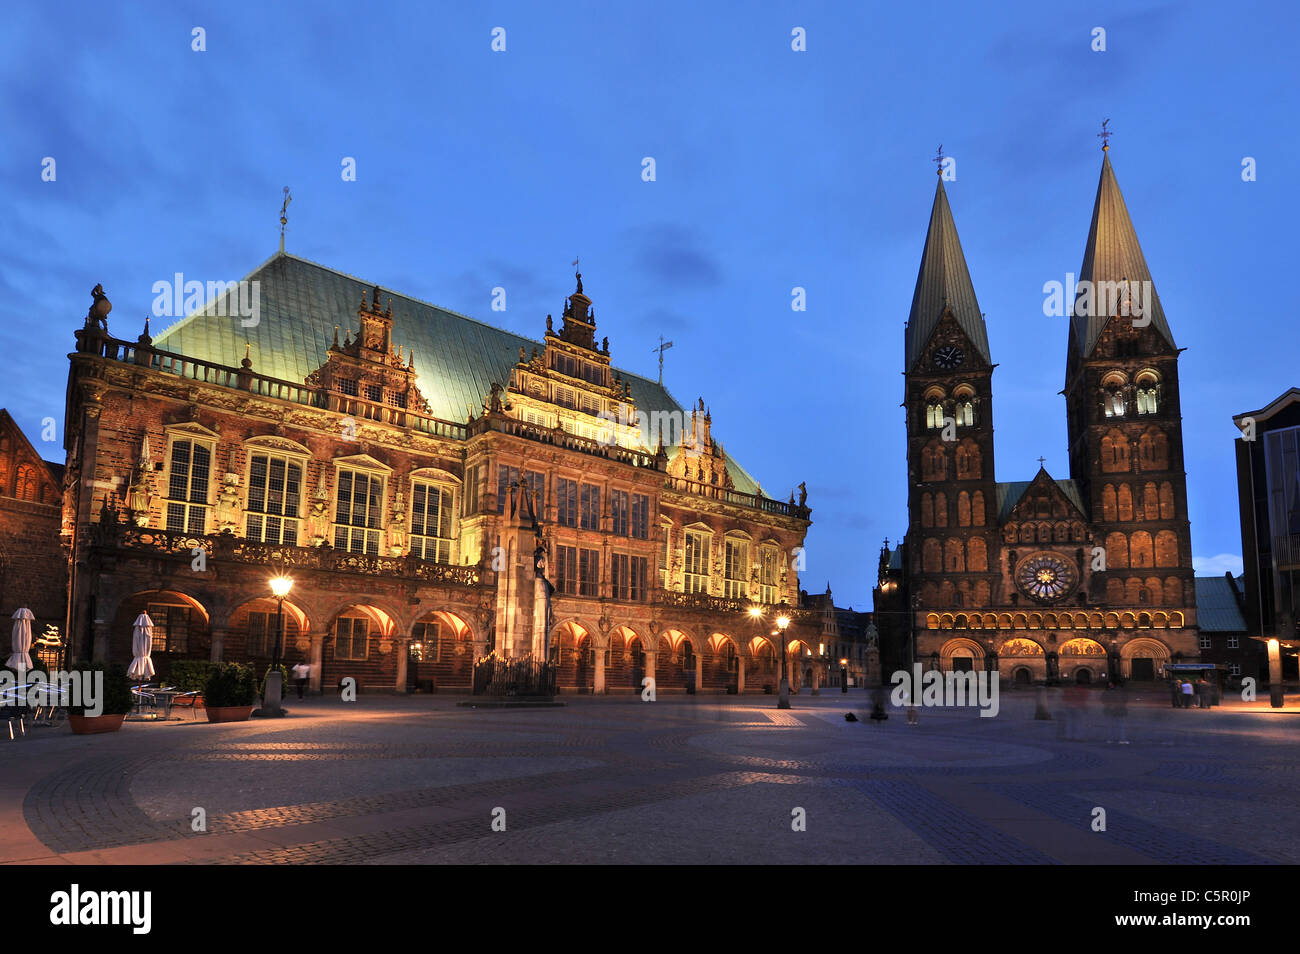 market square of Bremen in Northern Germany with old town hall and St. Petri cathedral, 2011 - Stock Image